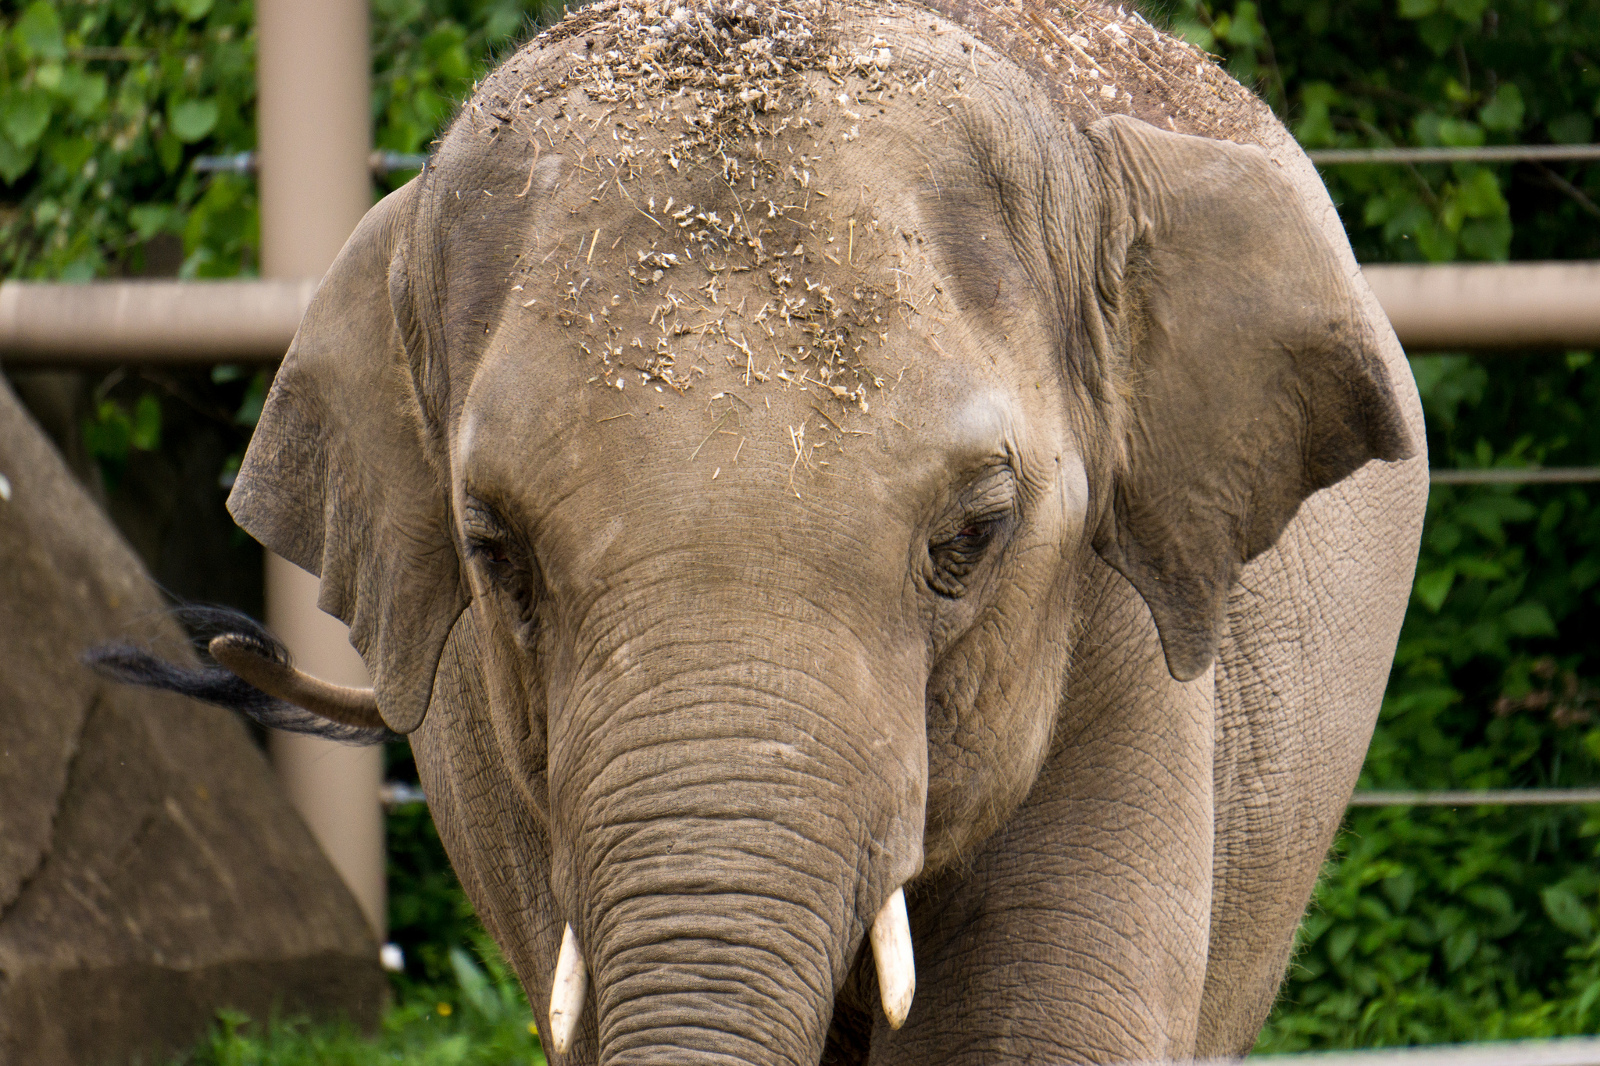 Why We Shouldn't Keep Solitary Elephants in Captivity